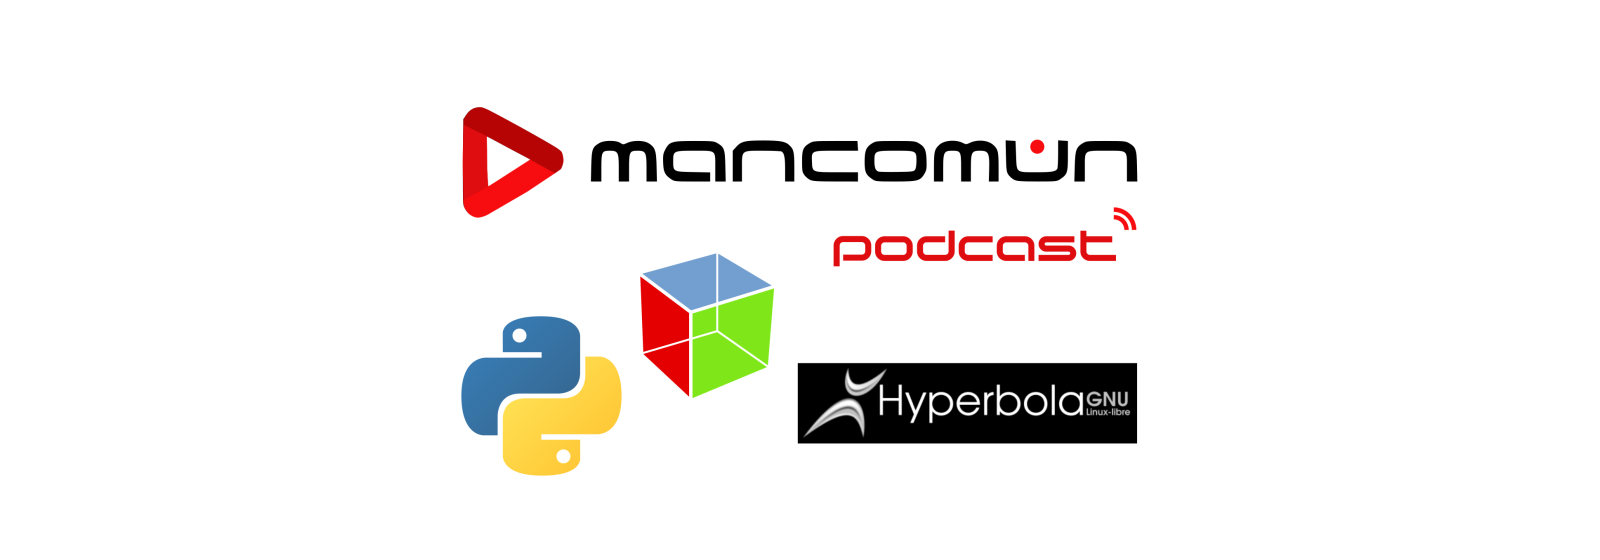 #20-Mancomún Podcast: Cambios que traerá o 2020 no software libre